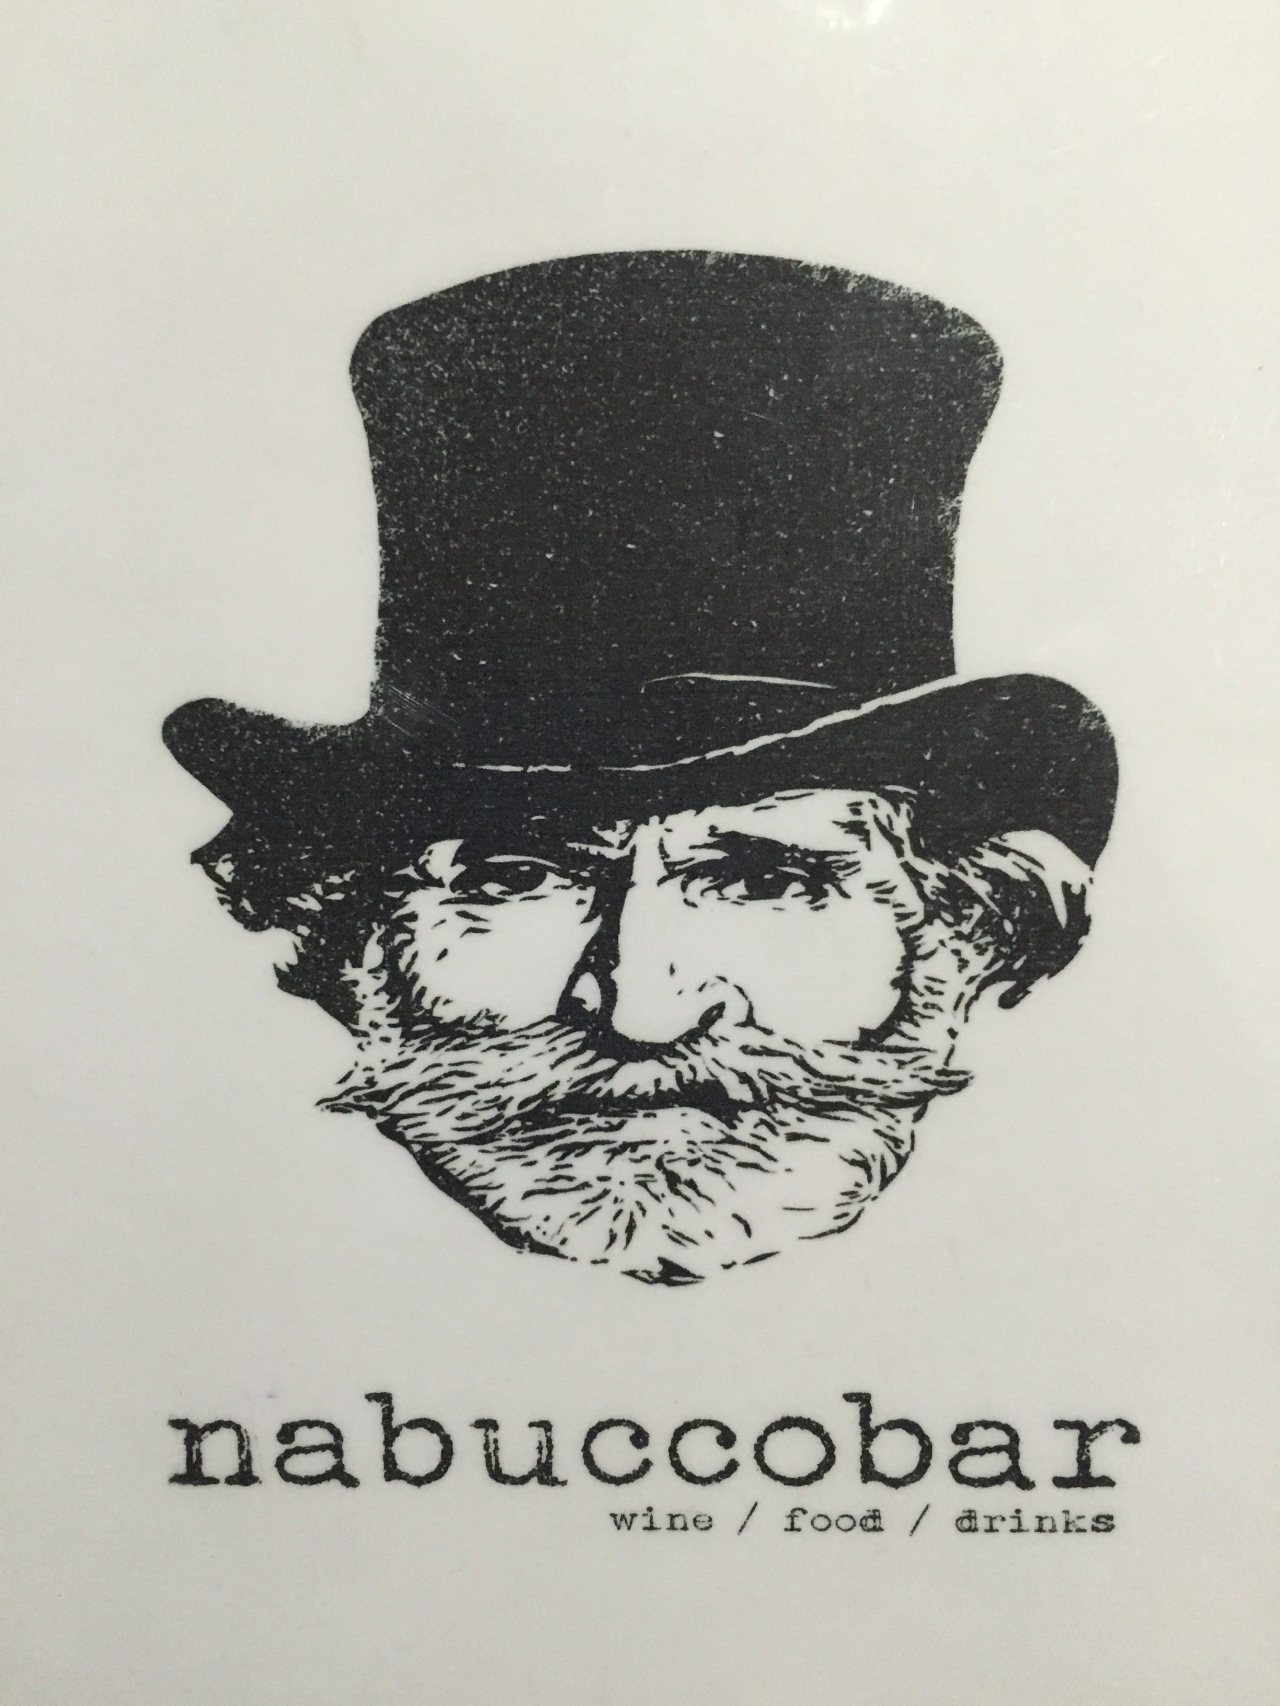 Nabucco Bar